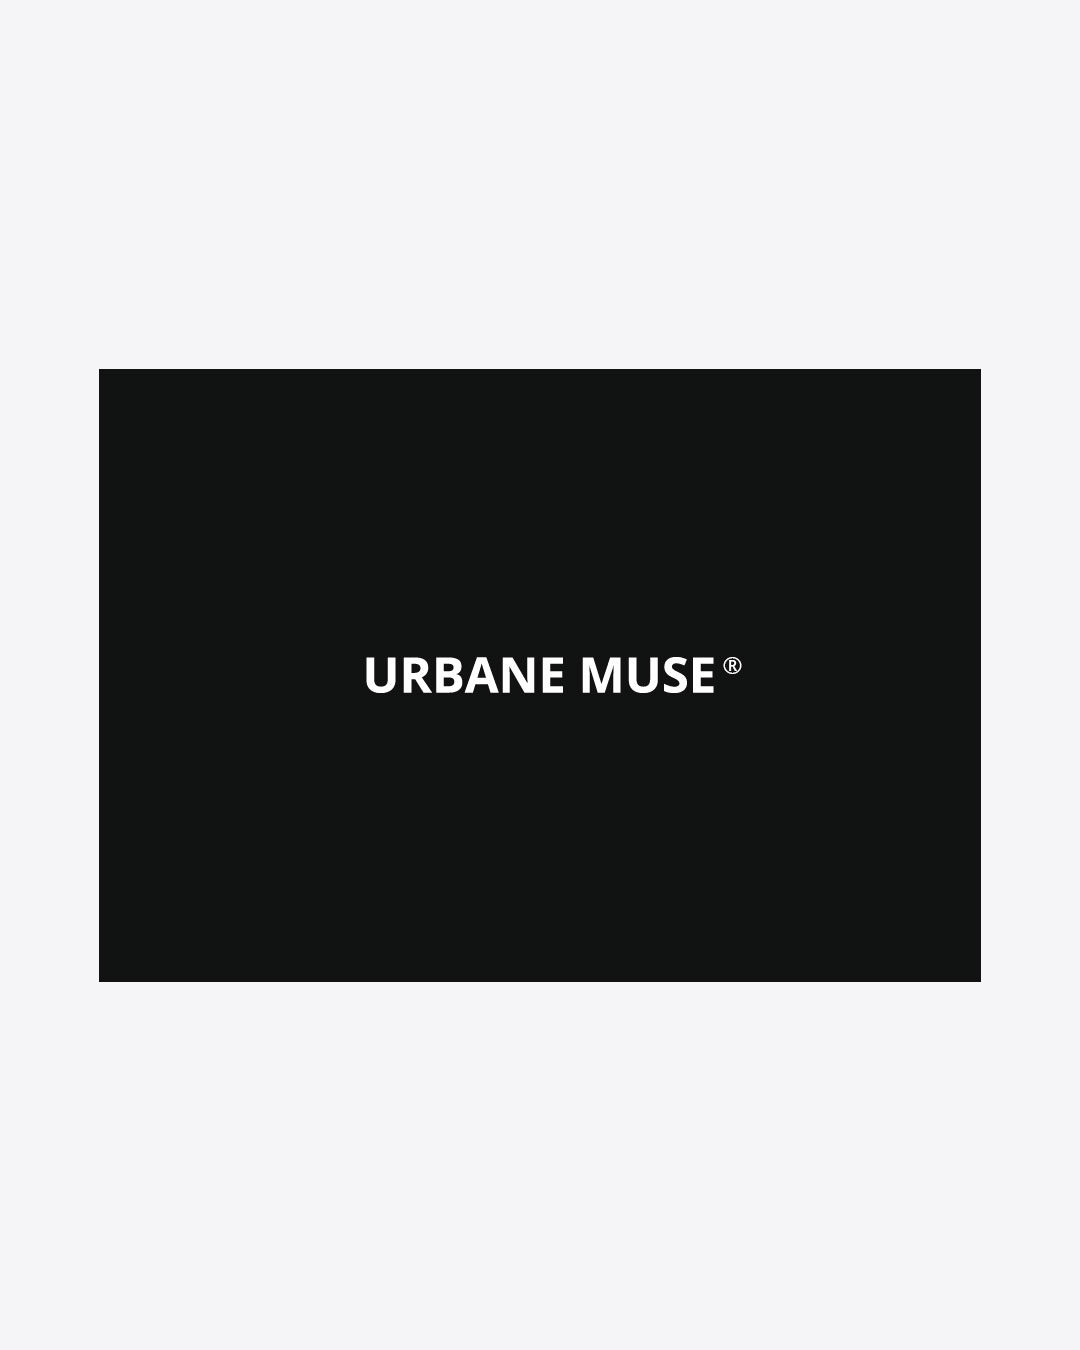 URBANE-MUSE-CHRIS-SMITH-Gift-Card